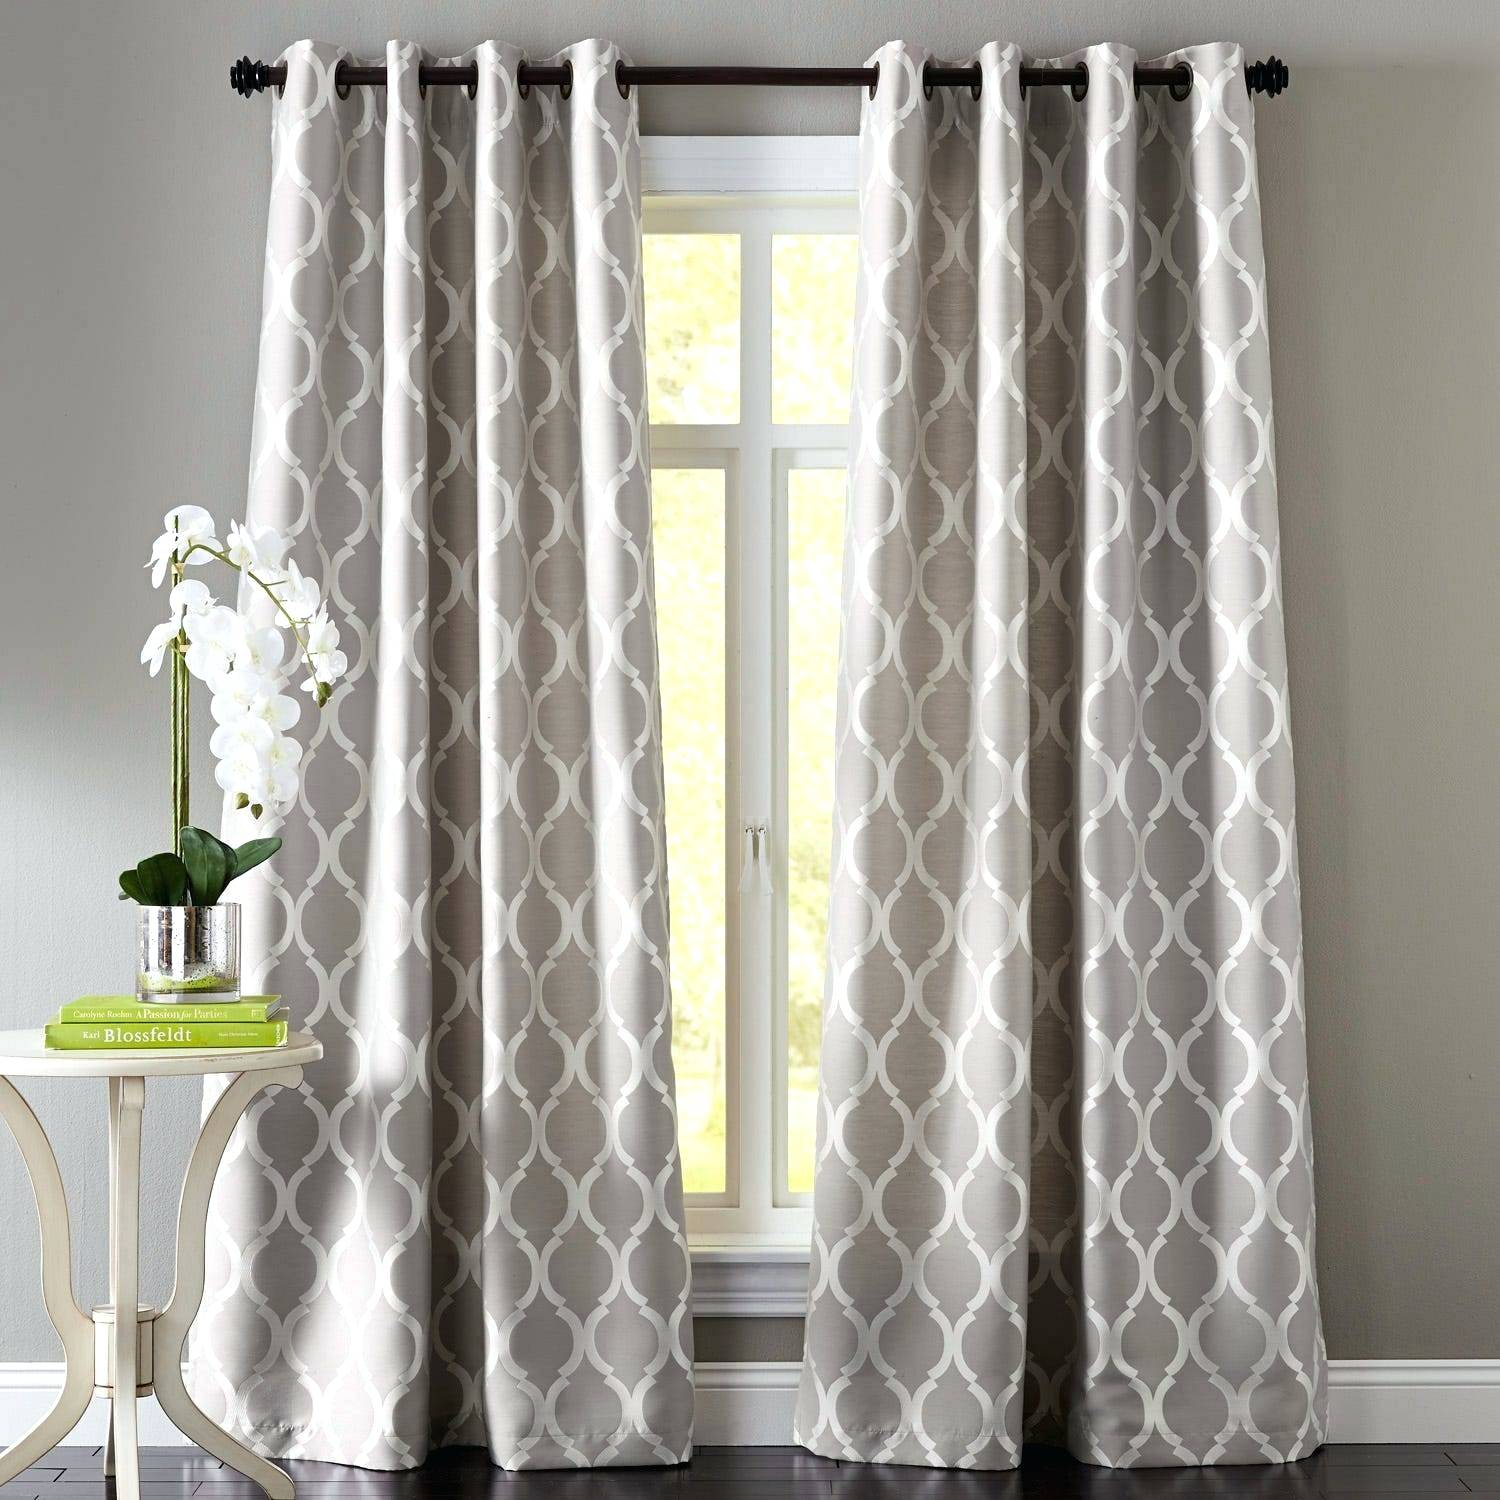 Curtains Grommet pertaining to Ultimate Blackout Short Length Grommet Panels (Image 9 of 30)